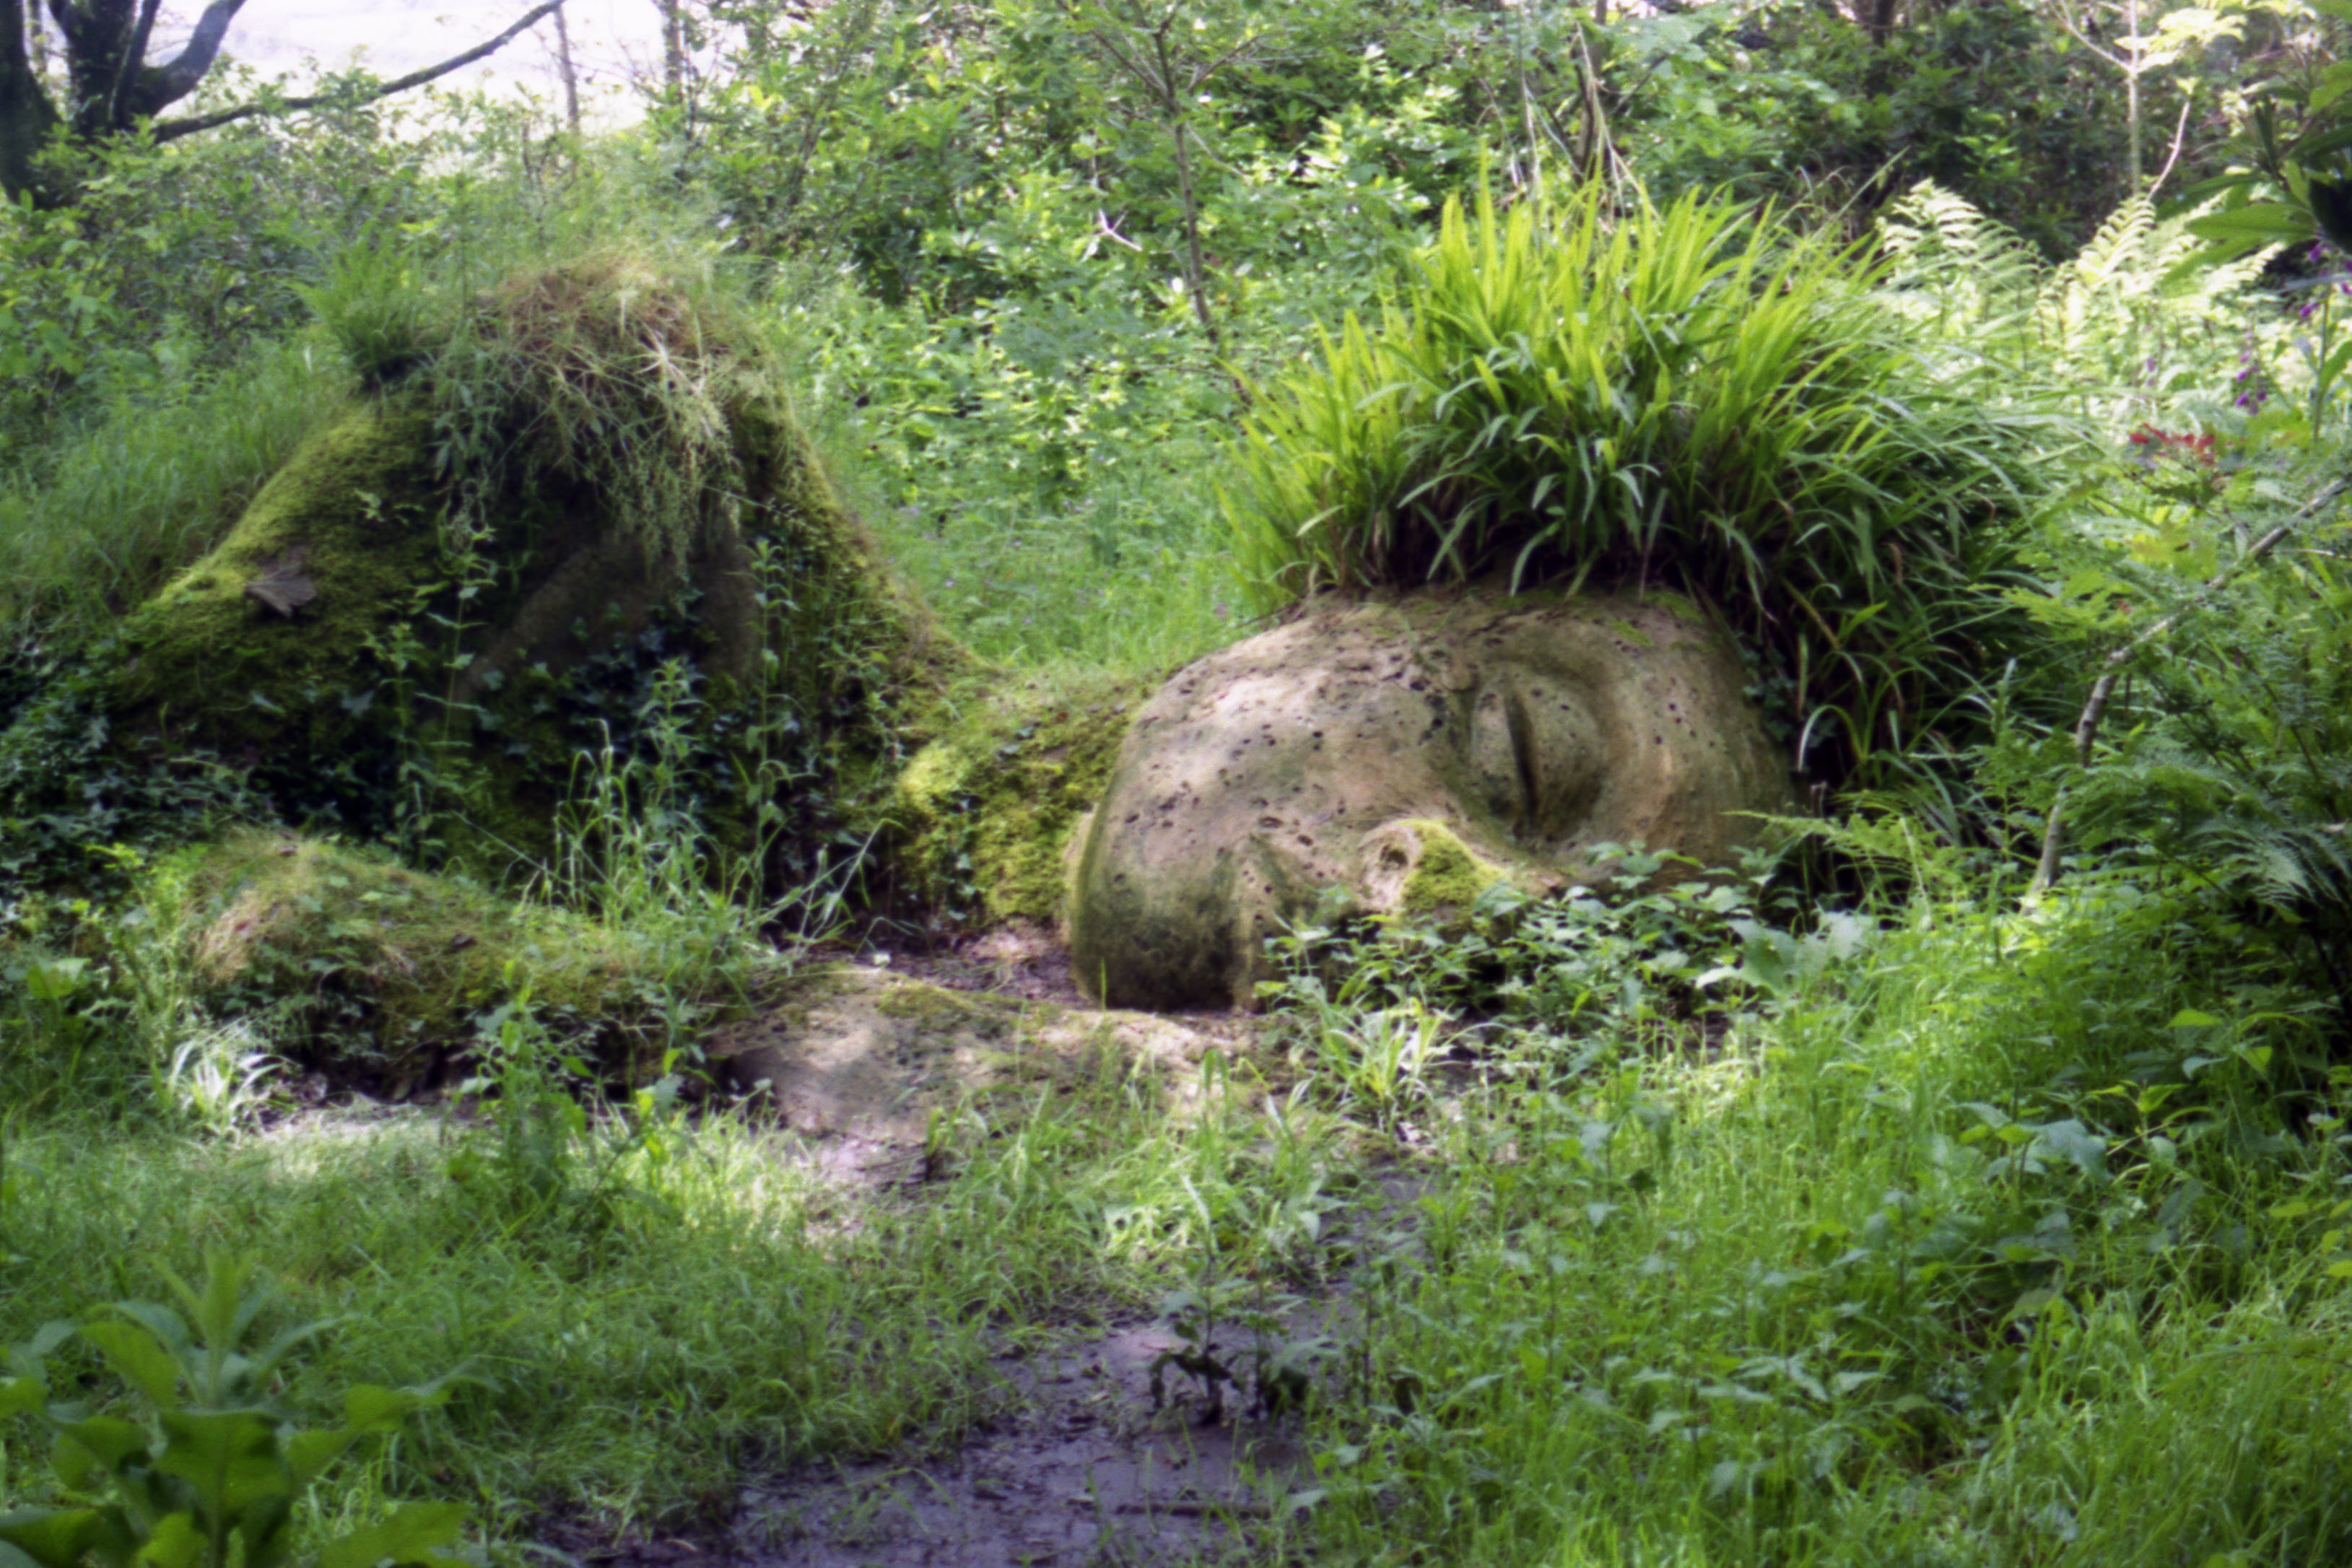 Sleeping Mud-maid, Lost Gardens of Heligan